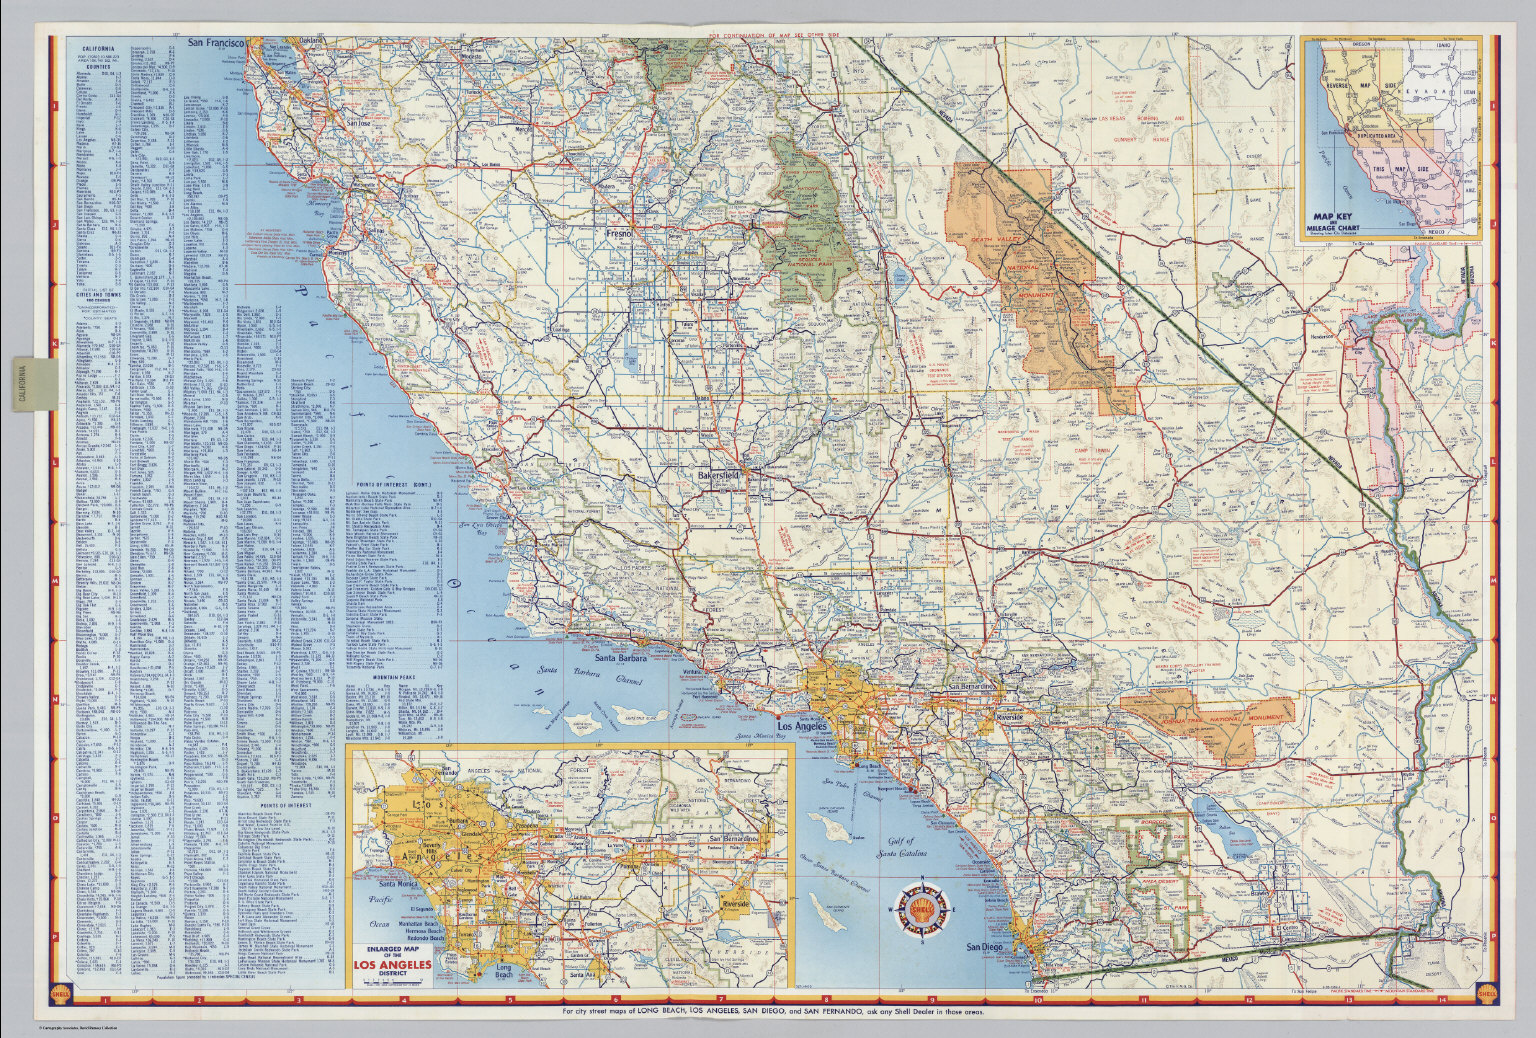 Shell Highway Map Of California Southern Portion David Rumsey - California road map